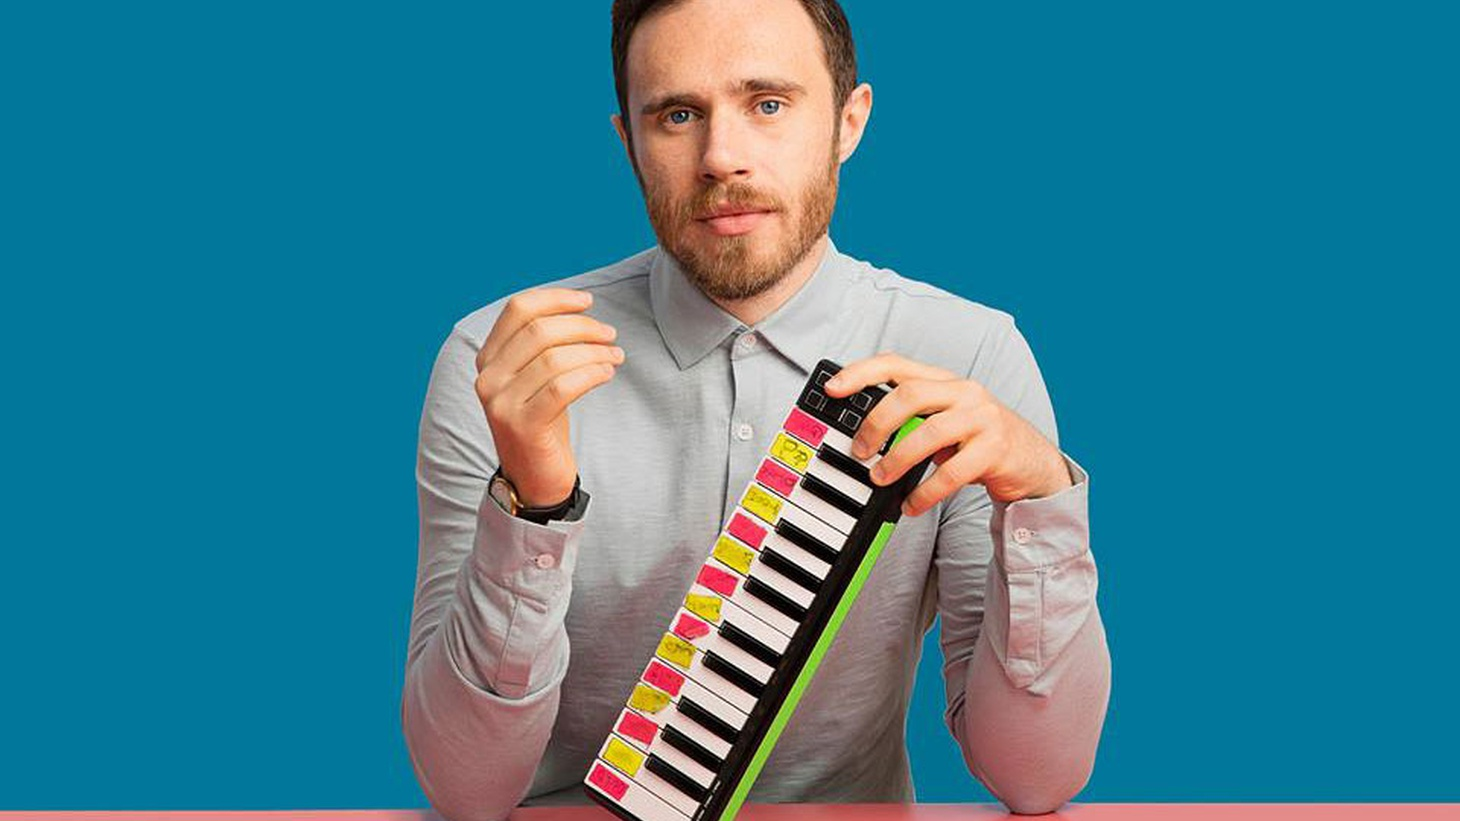 Irish singer/songwriter James Vincent McMorrow made a sonic shift on his new album by infusing his songs with R&B and electronic elements.